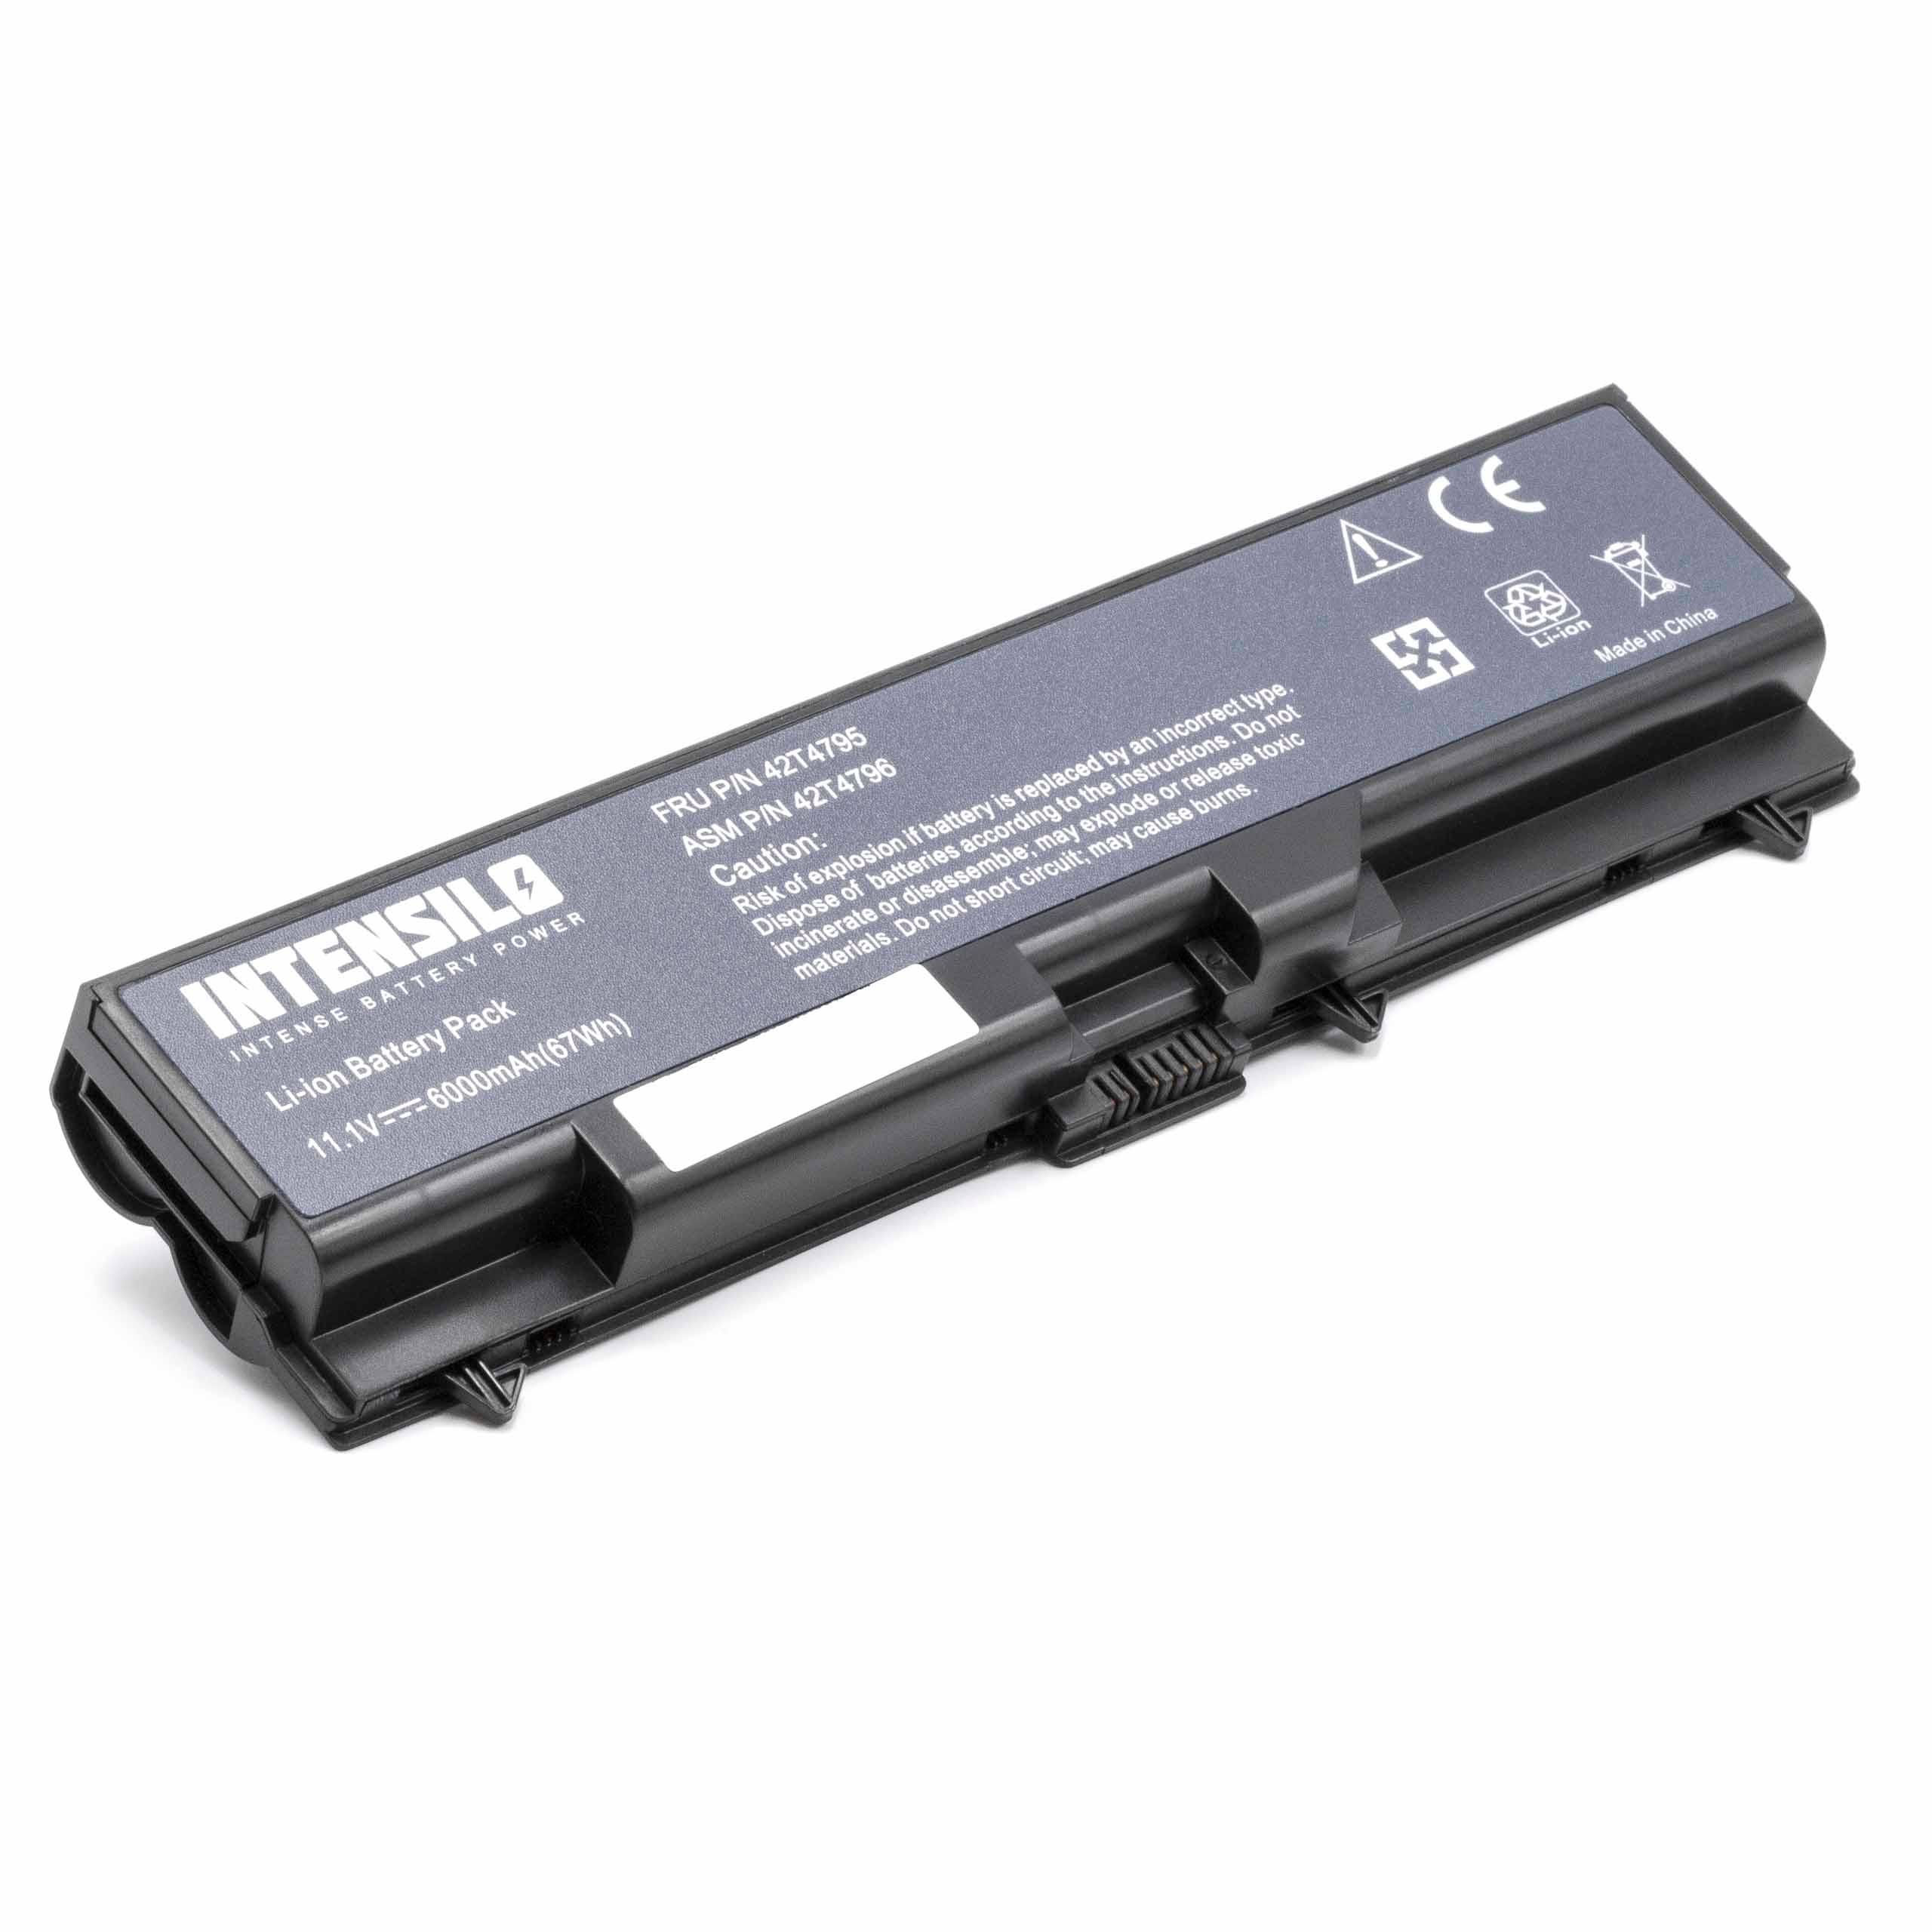 battery replaces 42T4795 for laptop (6000mAh, 10 8V, Li-Ion, black)